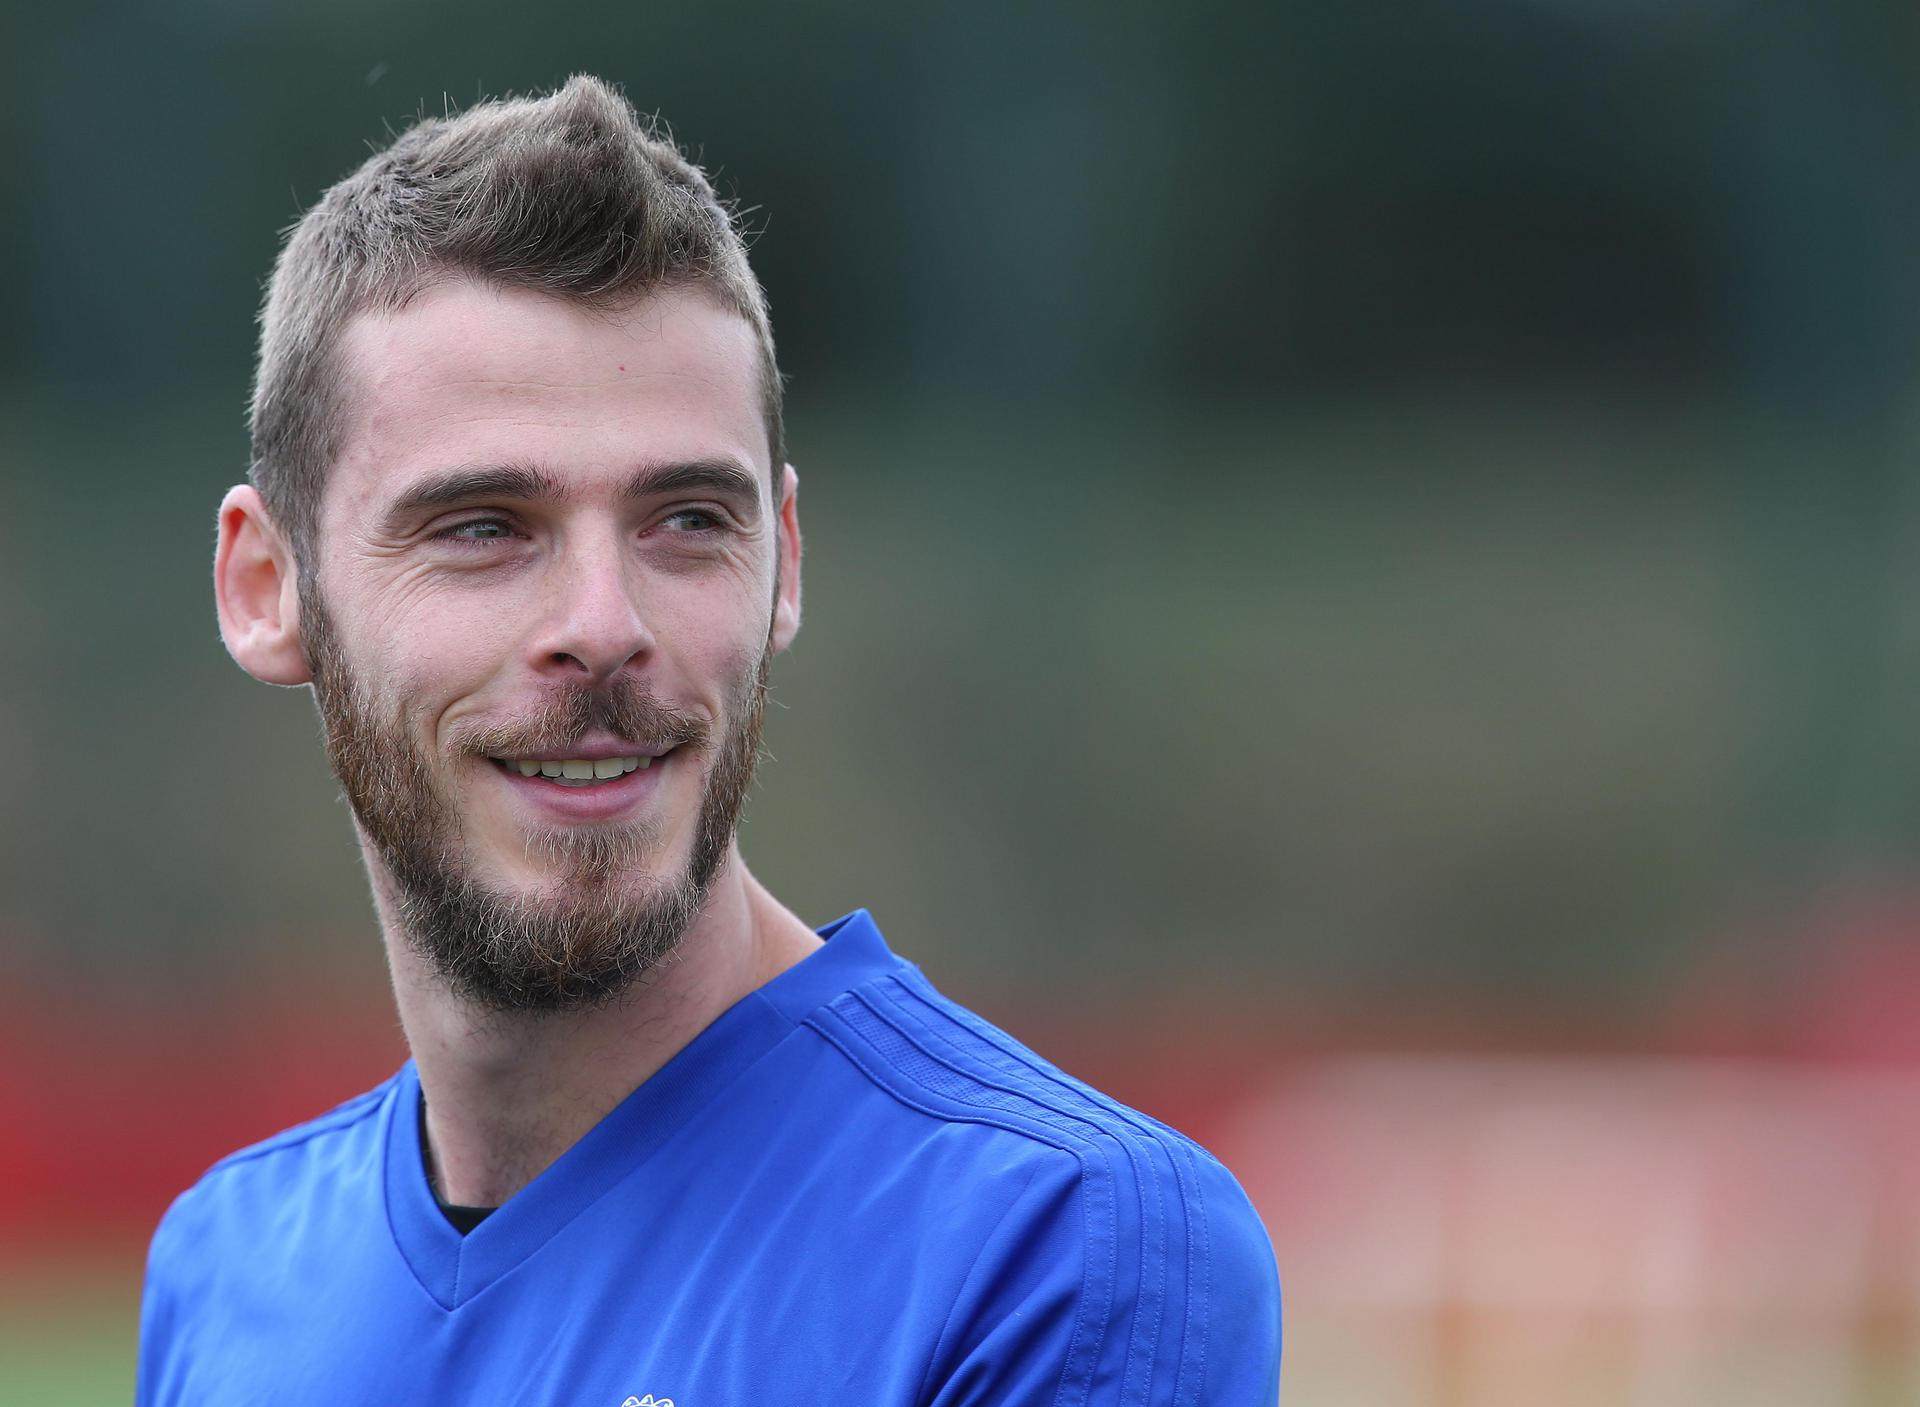 David De Gea smiles during a training session in August 2018